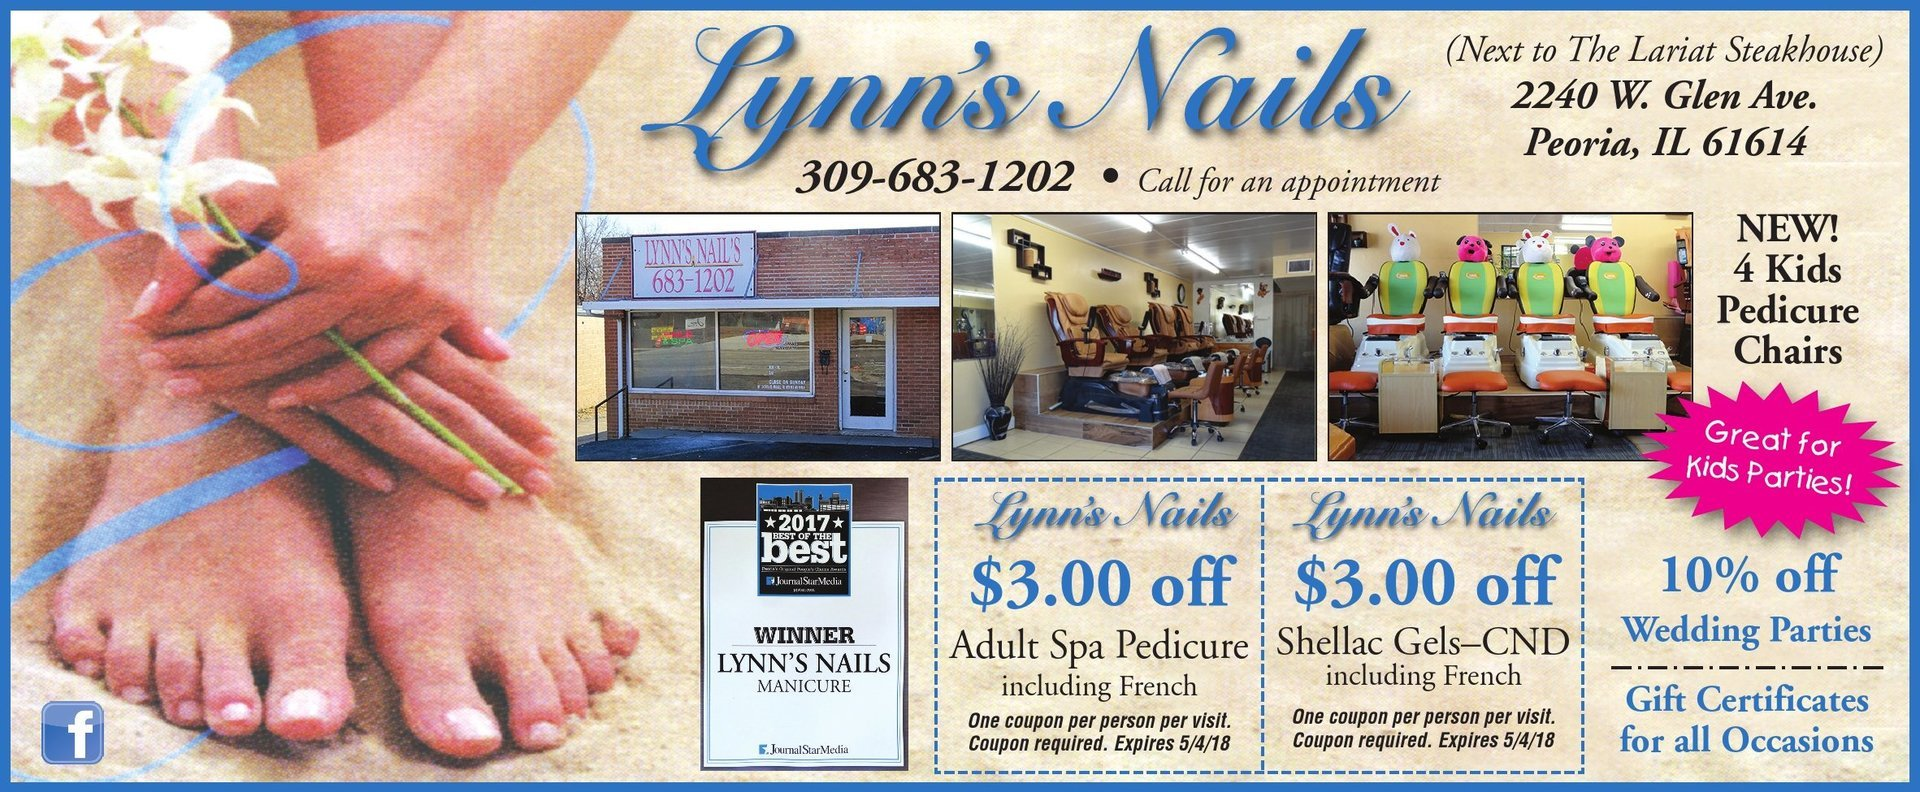 Lynn's Nails and Salon pedicure shellac gels coupons Peoria, IL